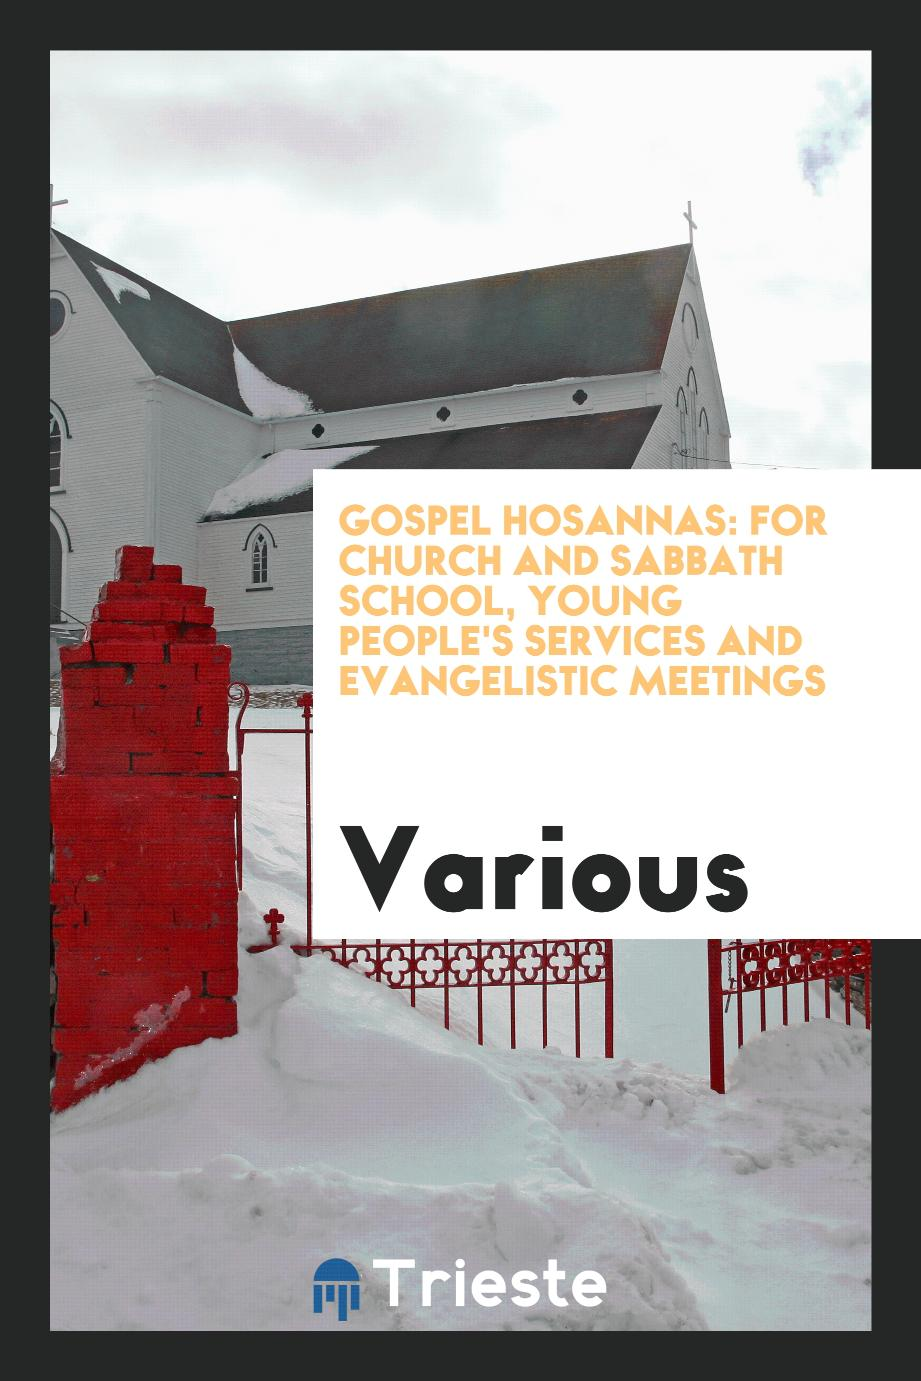 Gospel hosannas: for church and Sabbath school, young people's services and evangelistic meetings